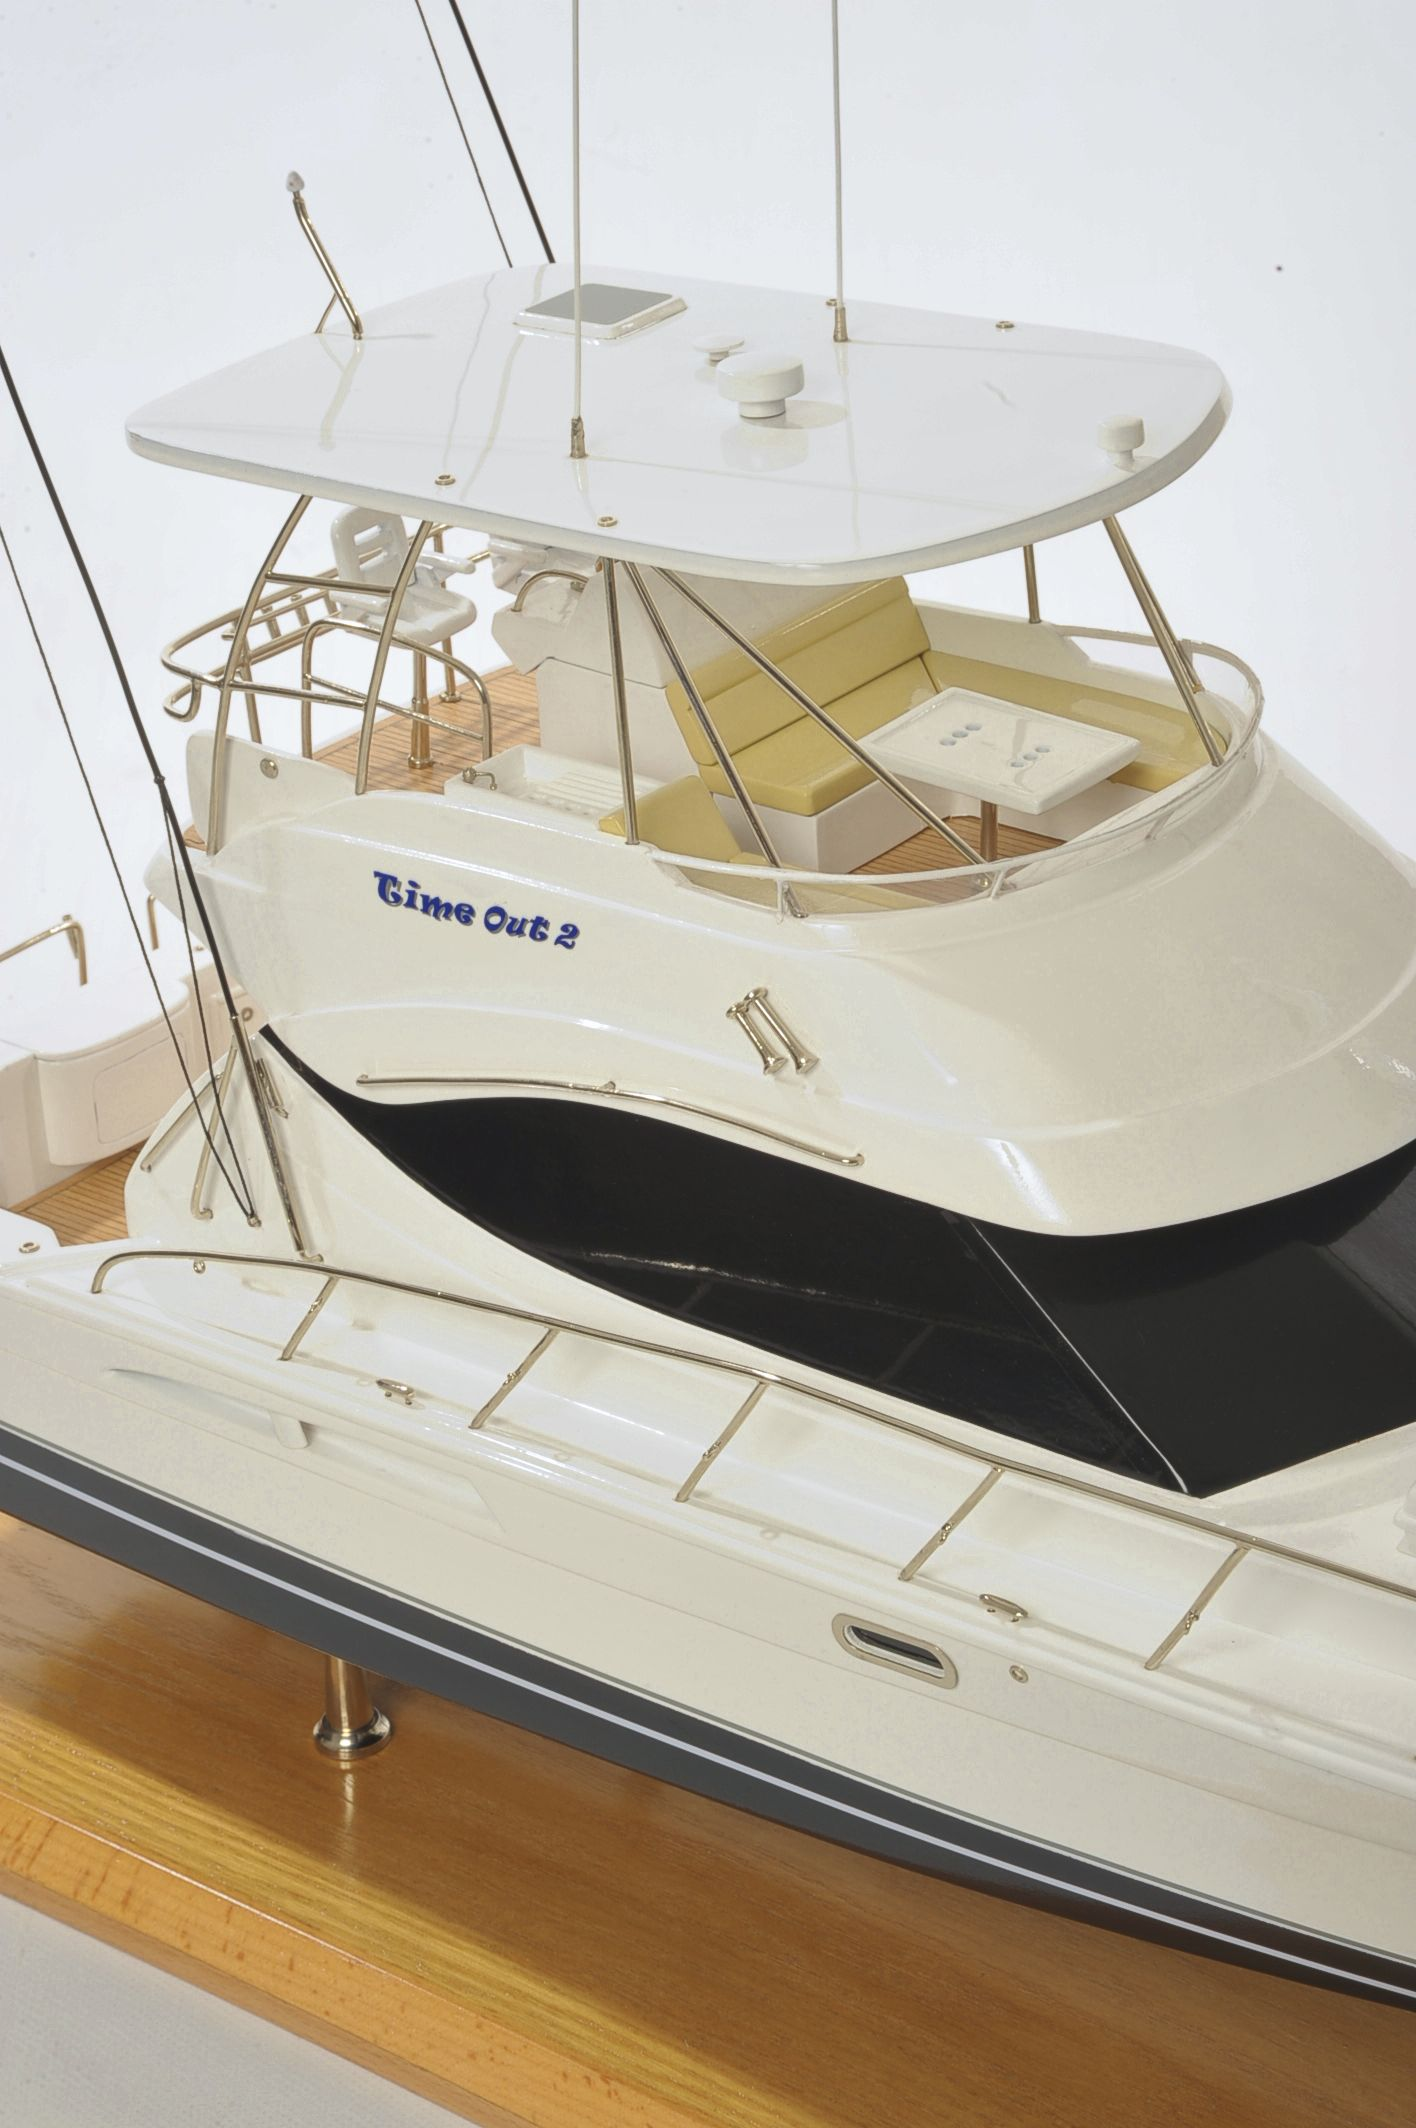 1517-8958-Rivera-45-Model-Boat-Time-Out-2